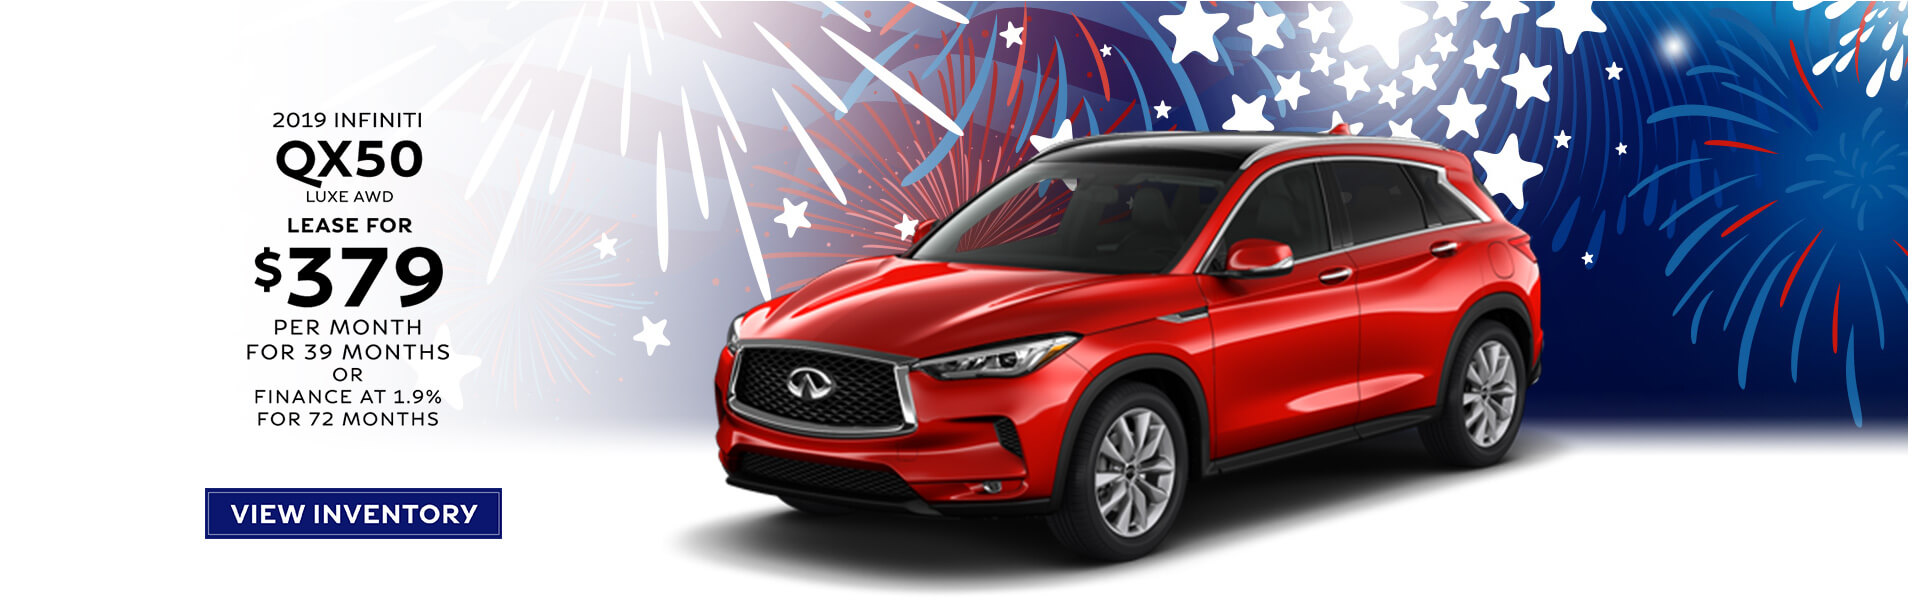 QX50 LUXE- Lease for $389